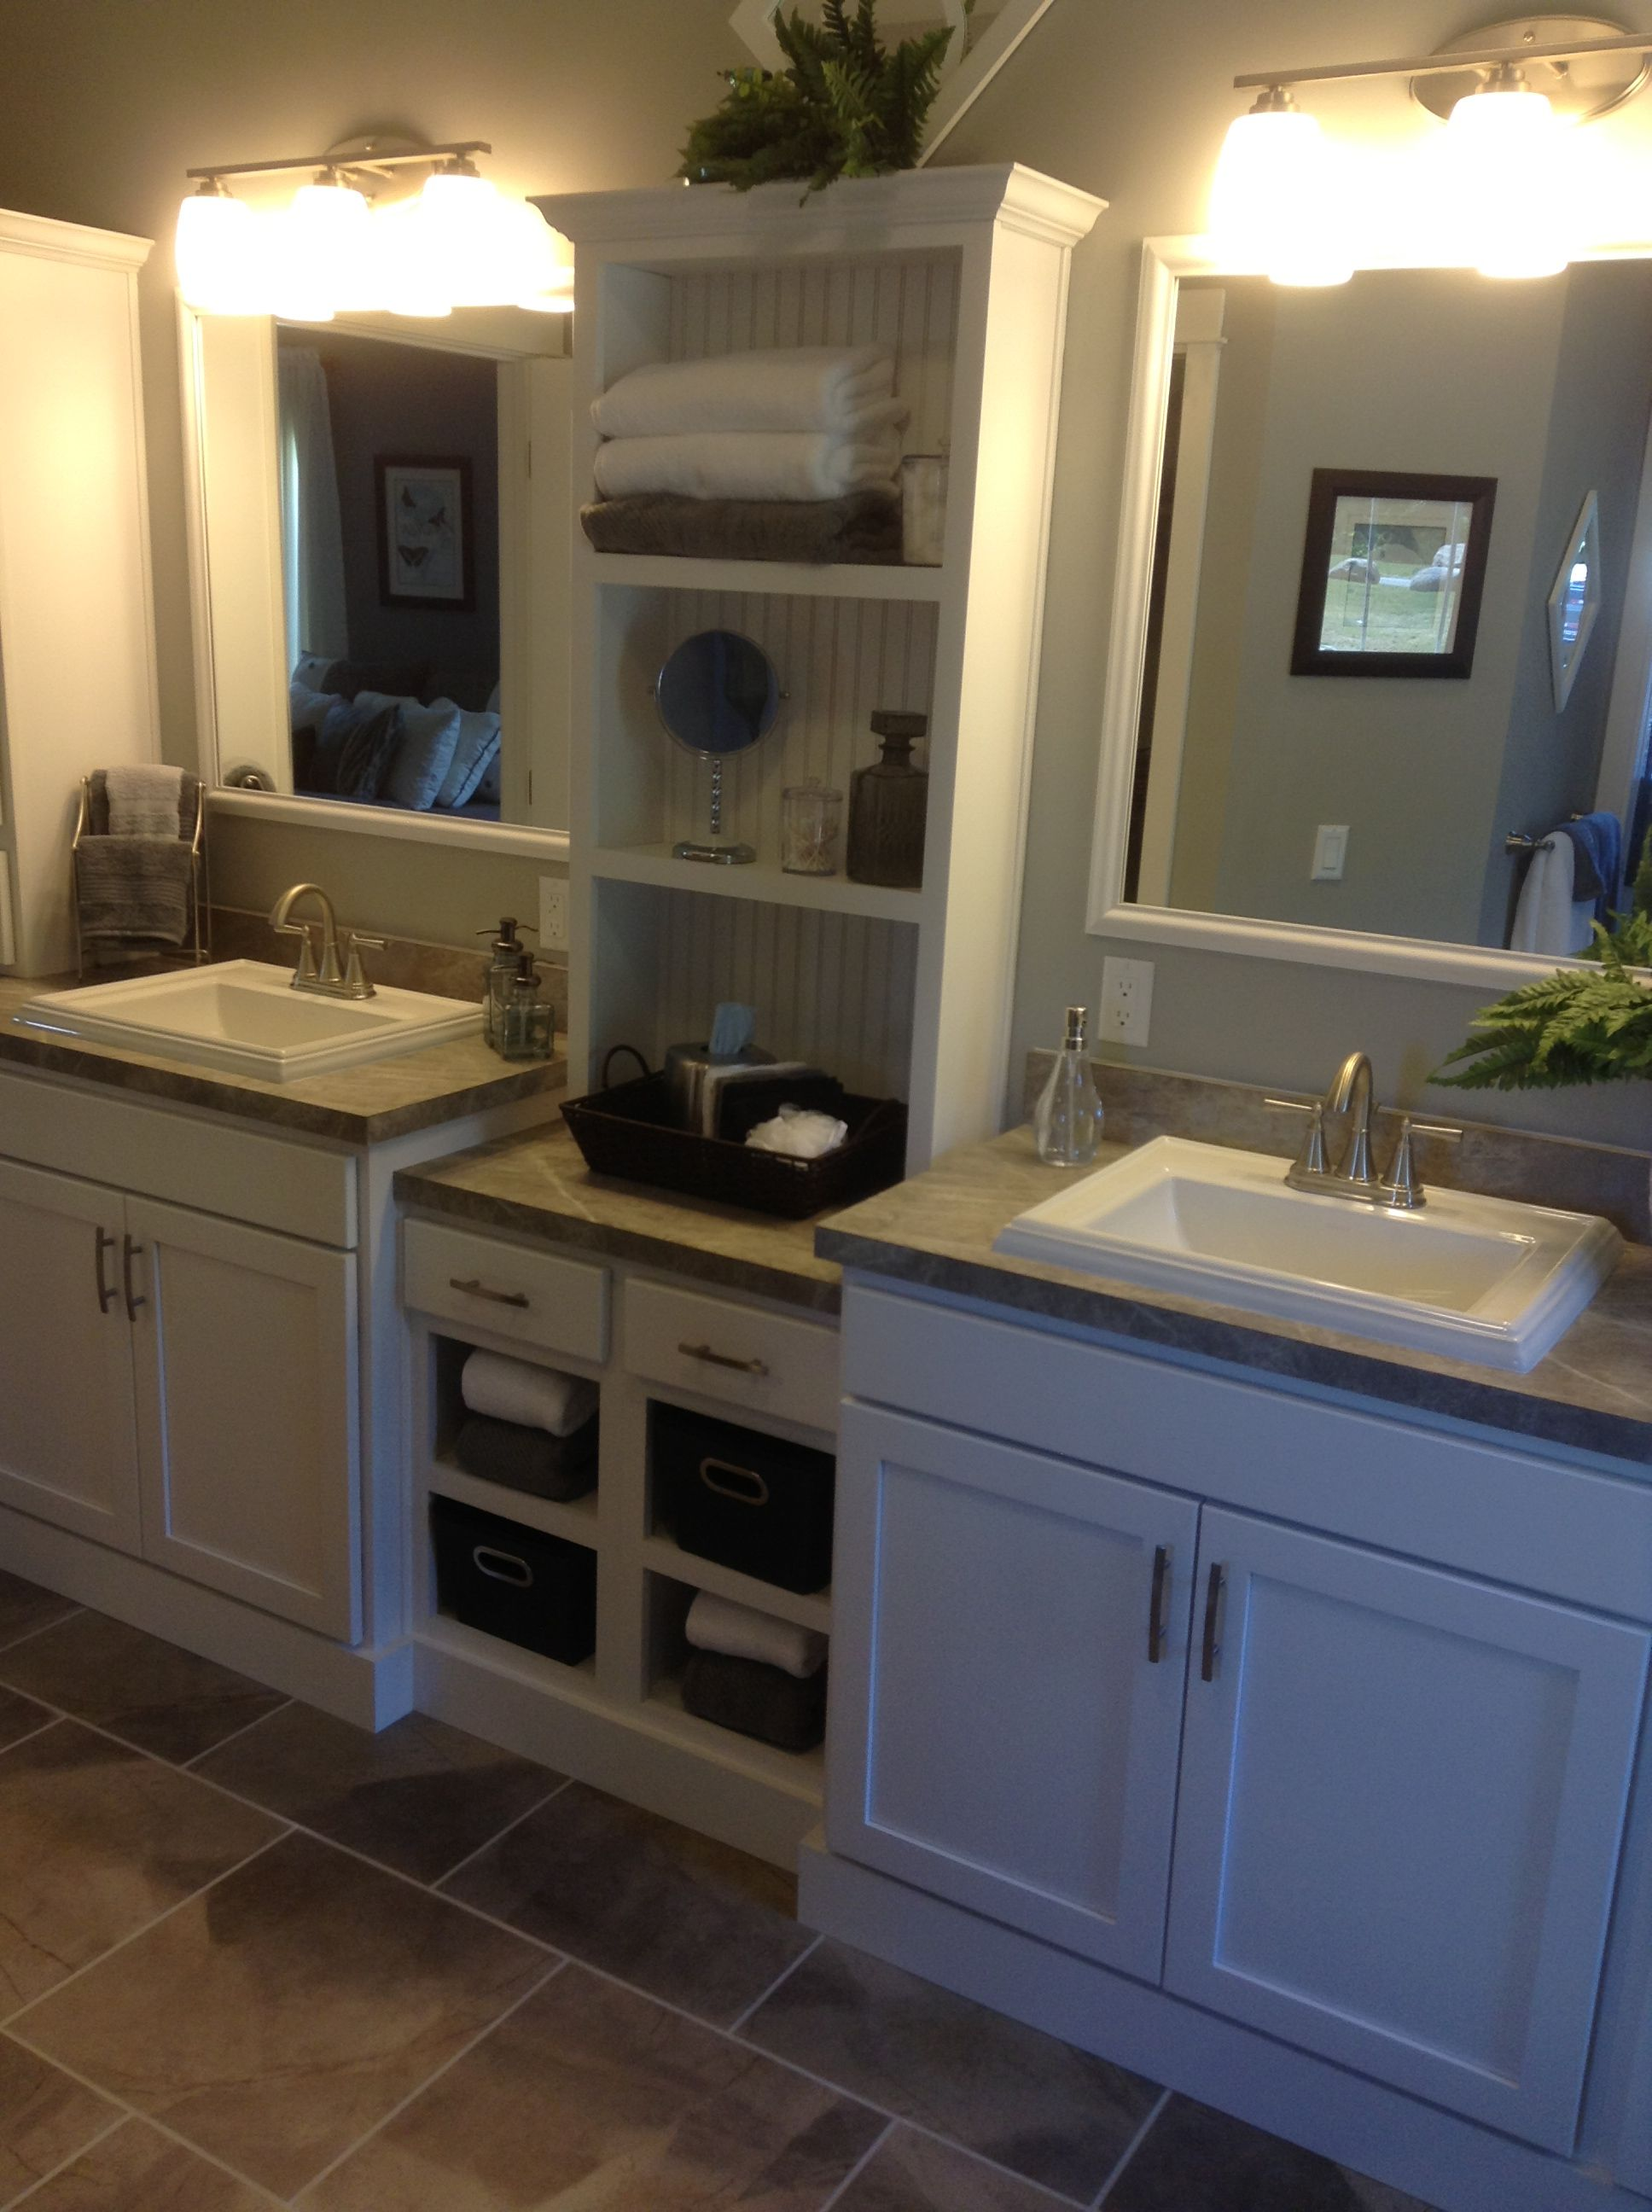 His and Her master bath sinks and